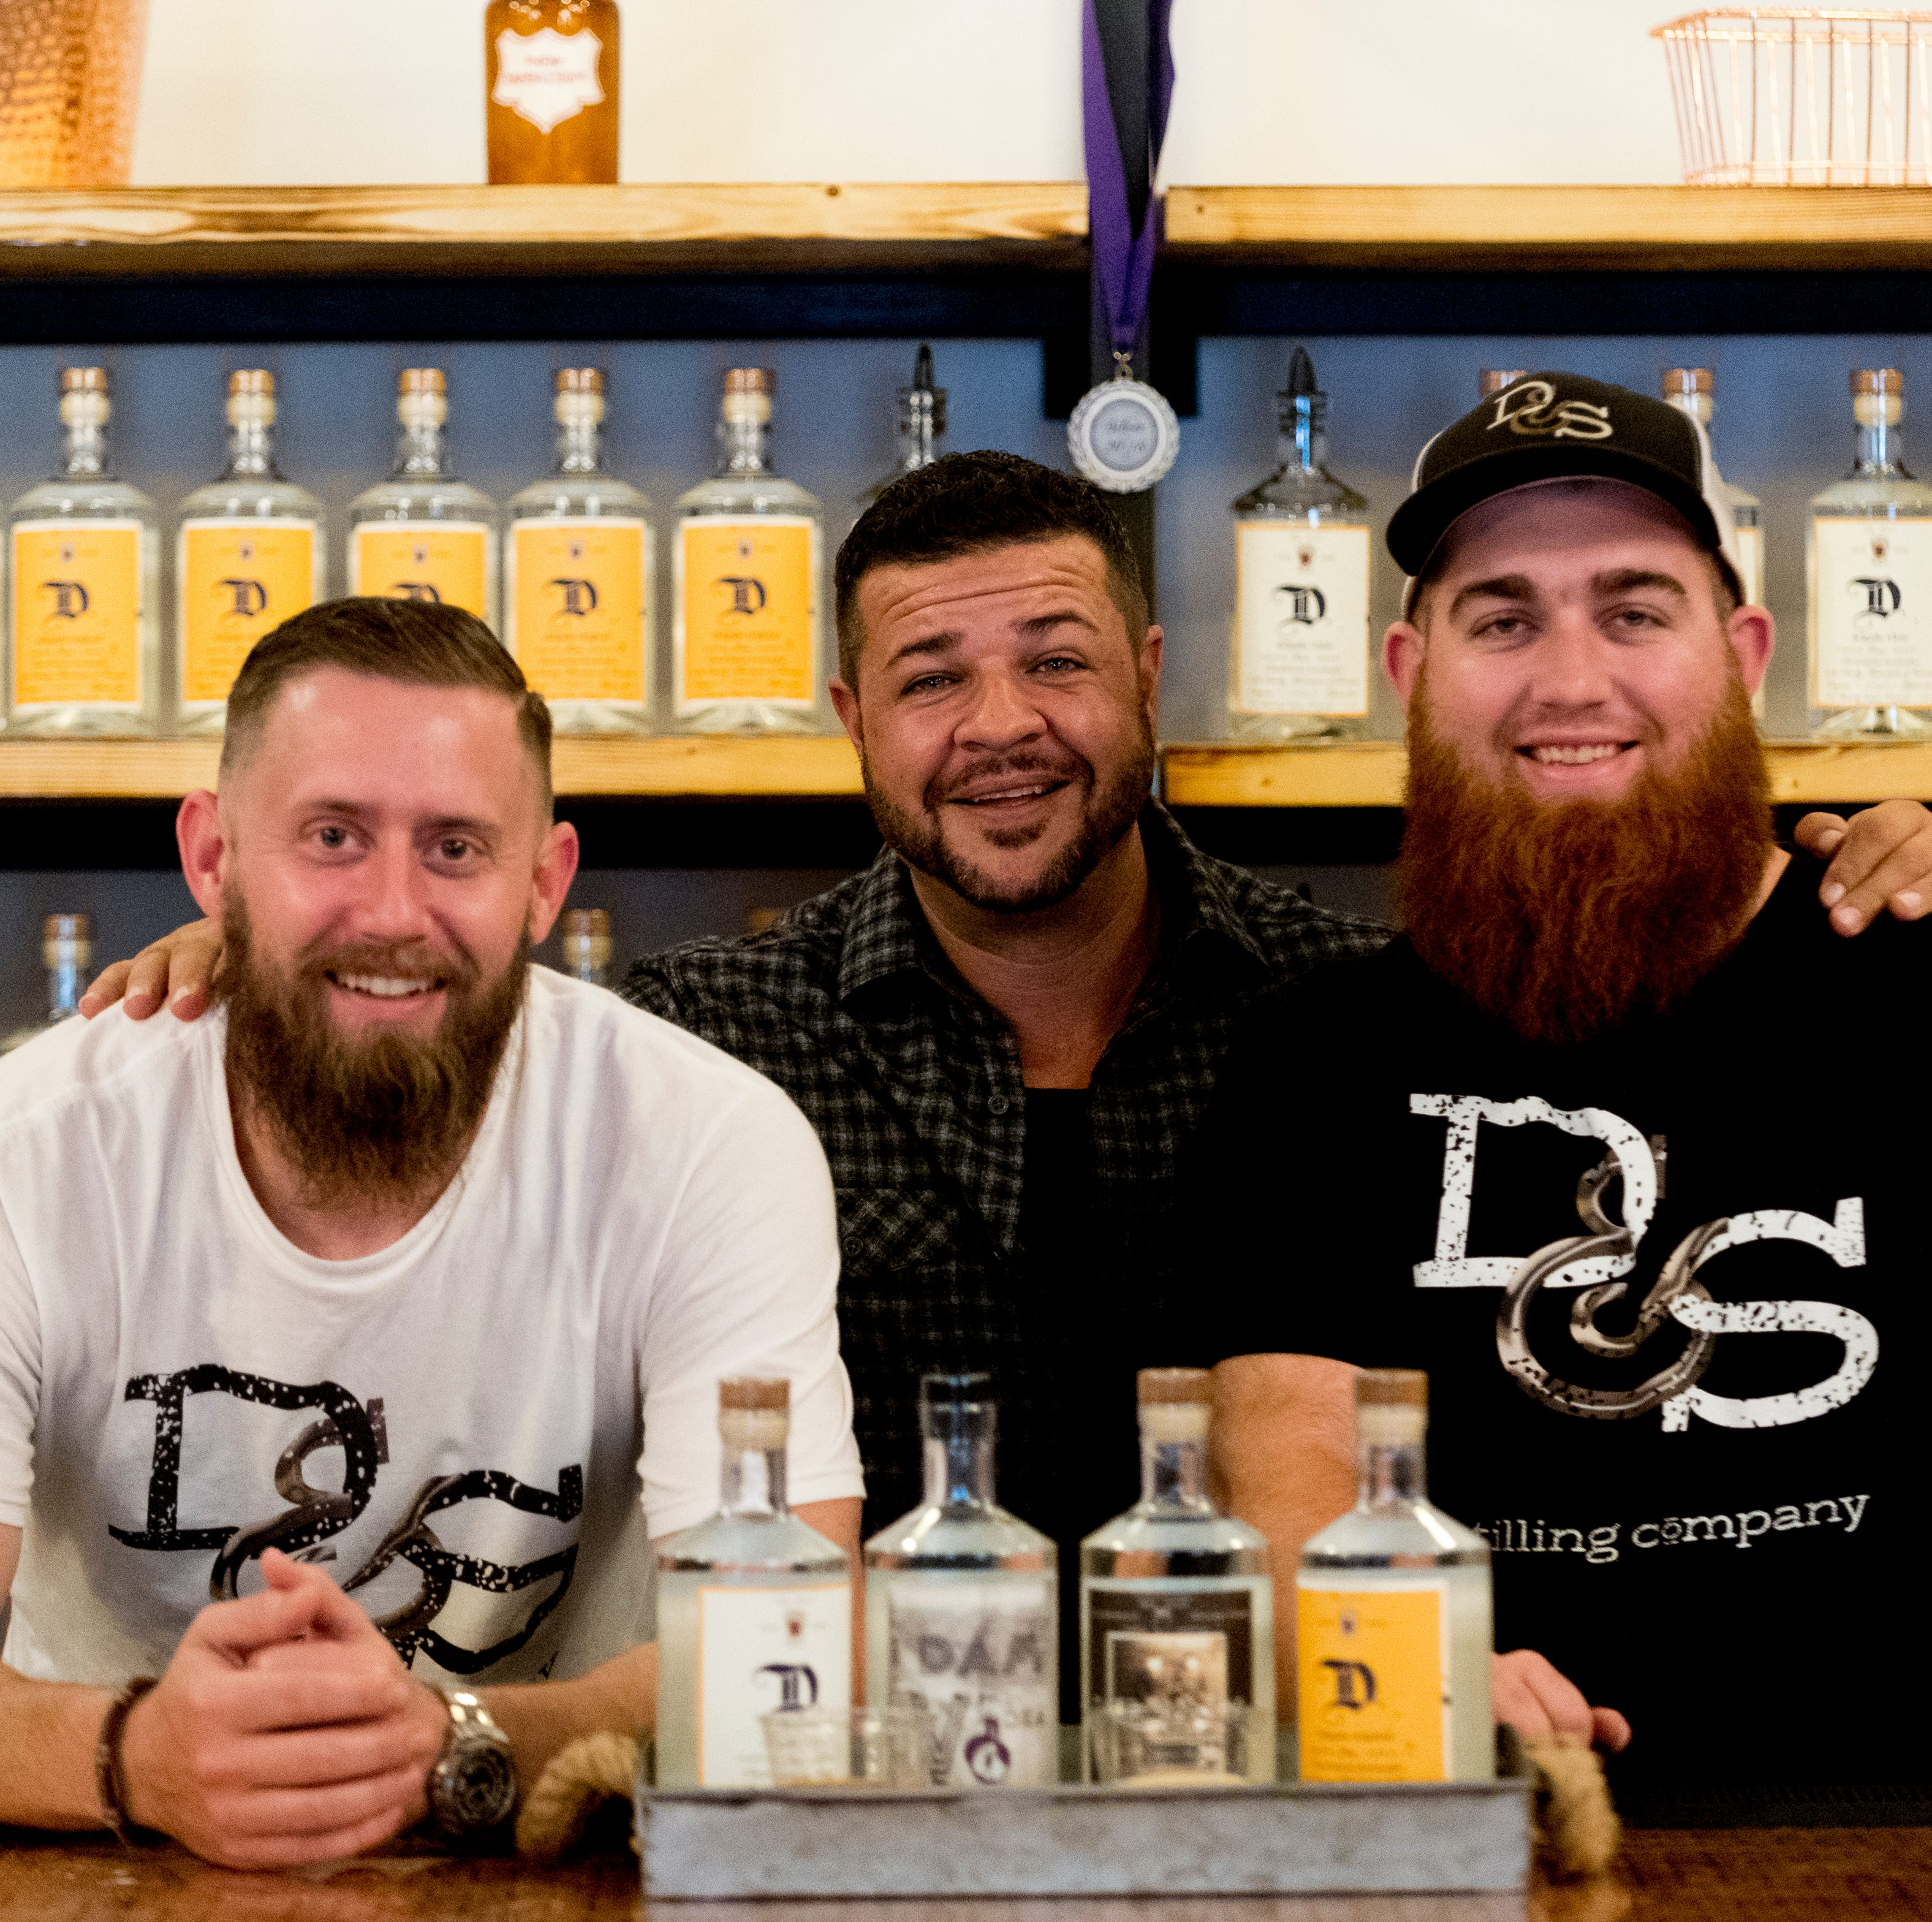 D&S Distilling Co. offers organic spirits in Tenn., cocktails at Sevierville location